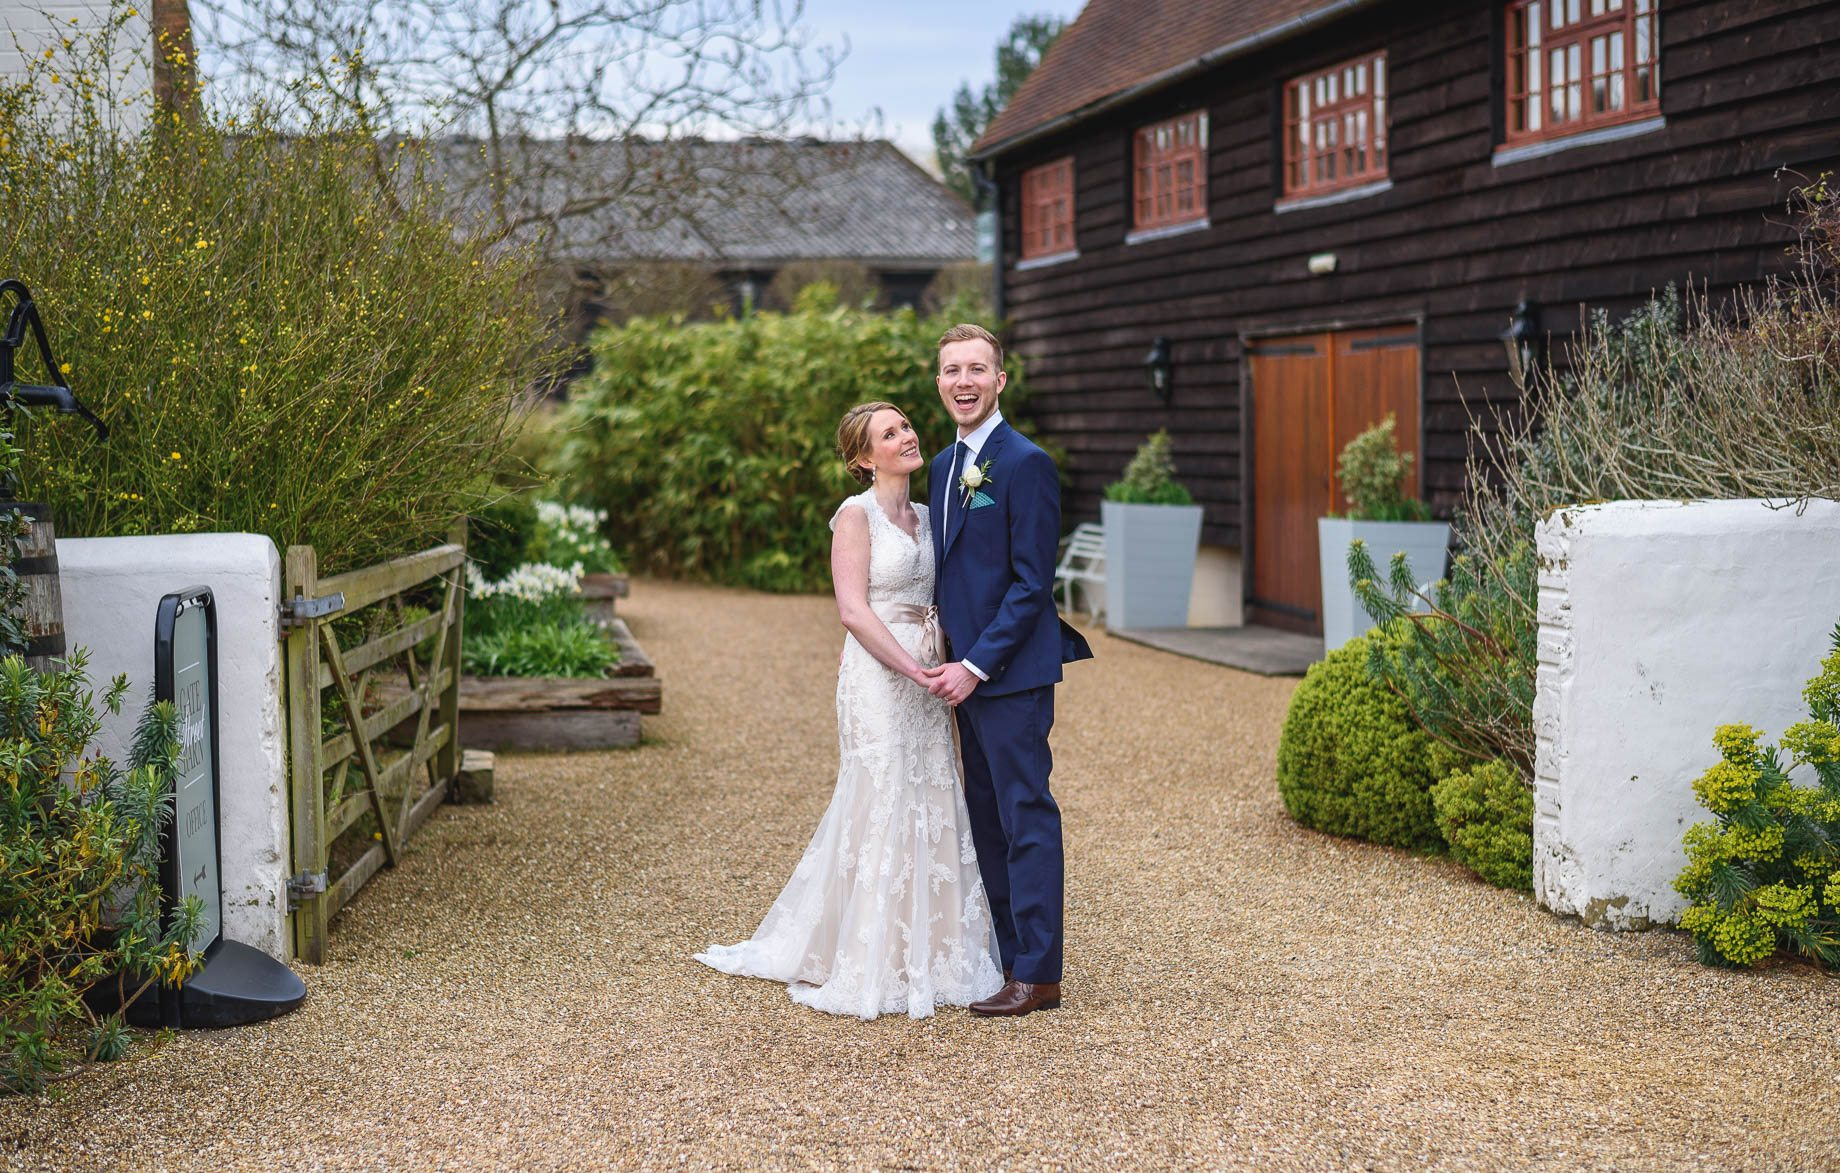 Surrey Wedding Photography by Guy Collier - Becca and James (62 of 145)